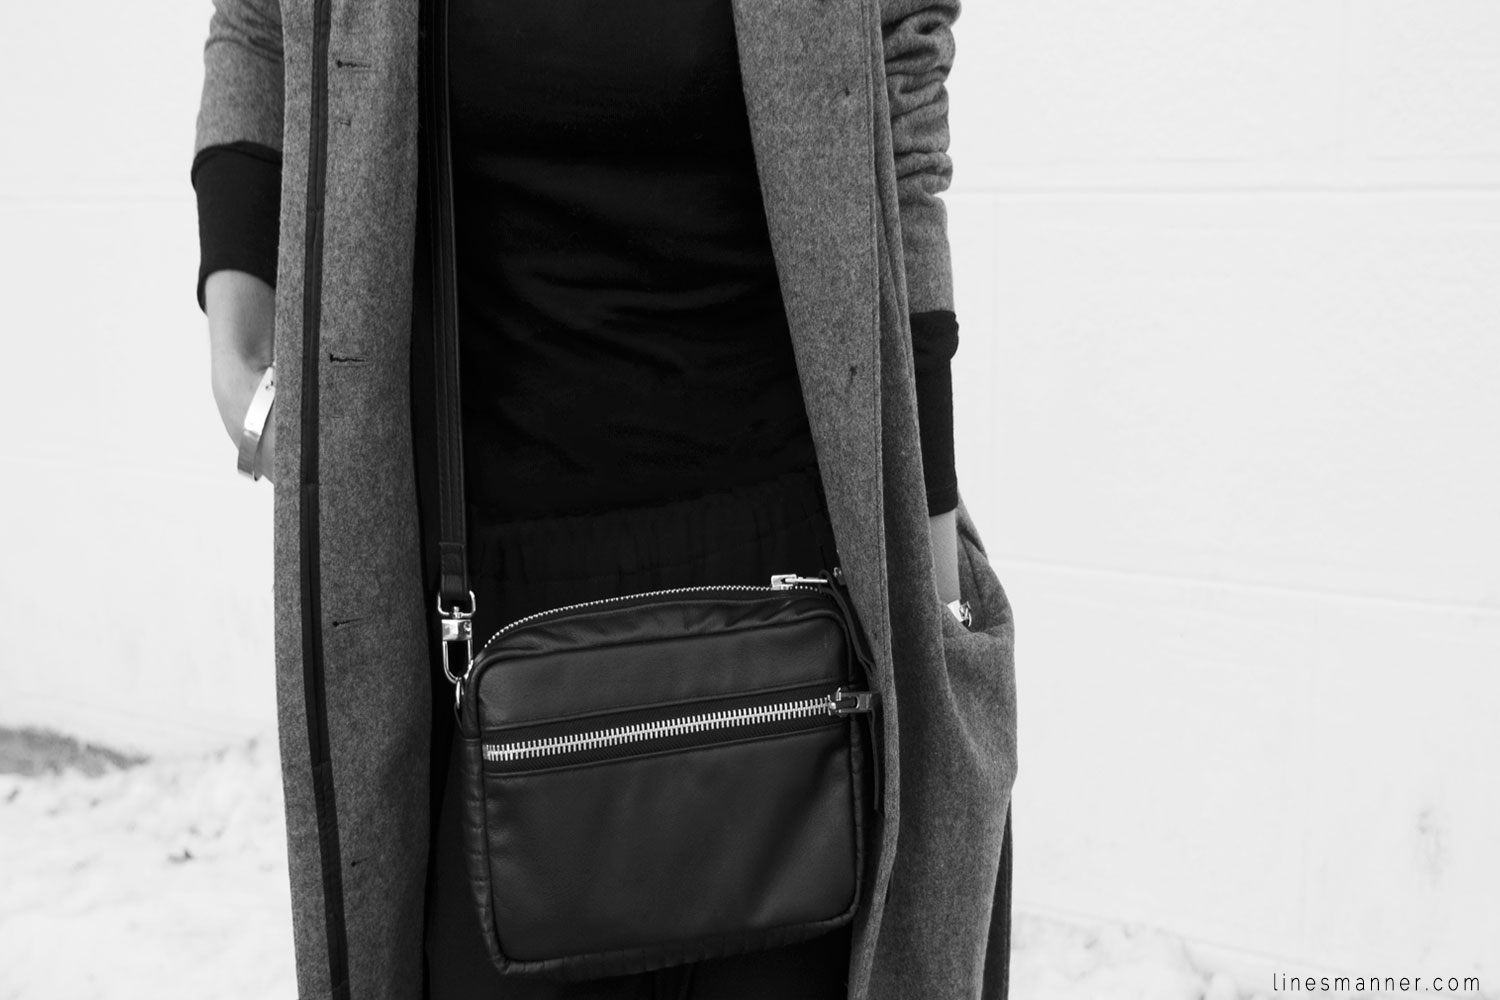 Lines-Manner-Simplicity-Neutral-Palette-Functional-Versatile-Timeless-Grey-Winter_Coat-Details-Essentials-Minimal-Basics-4